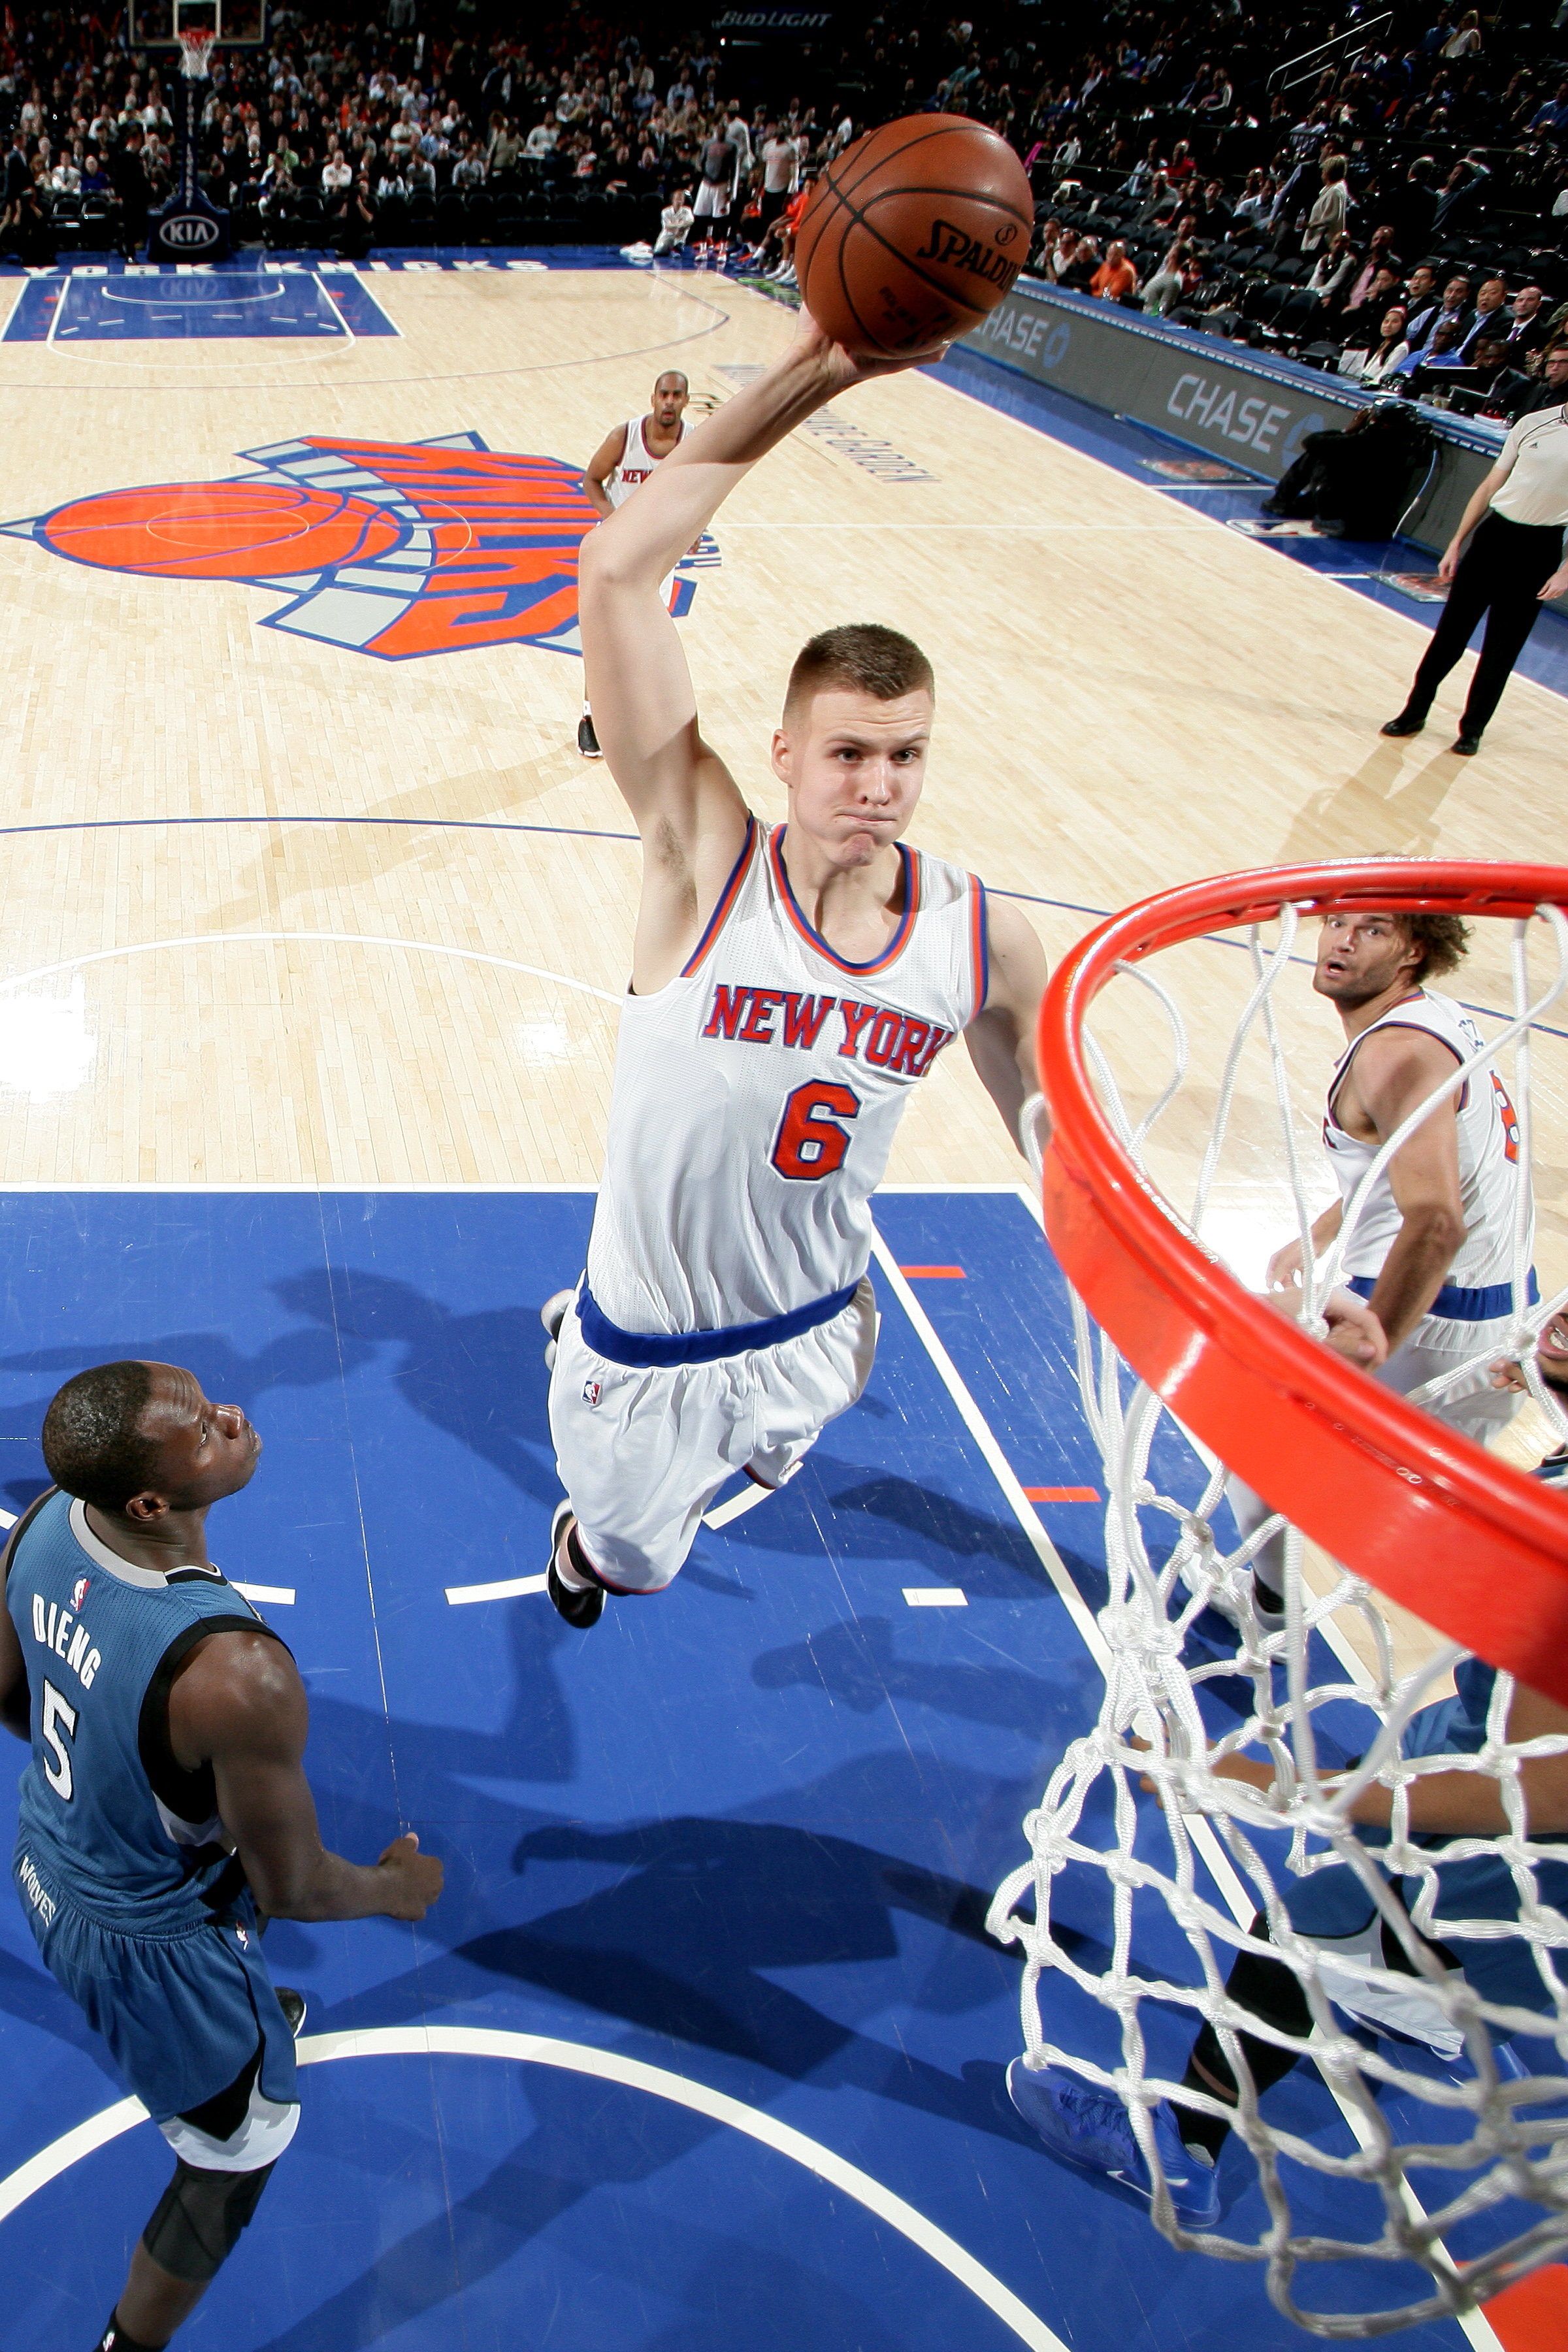 NEW YORK, NY - DECEMBER 16: Kristaps Porzingis #6 of the New York Knicks goes for the dunk during the game against the Minnesota Timberwolves on December 16, 2015 at Madison Square Garden in New York City, New York.  (Photo by Nathaniel S. Butler/NBAE via